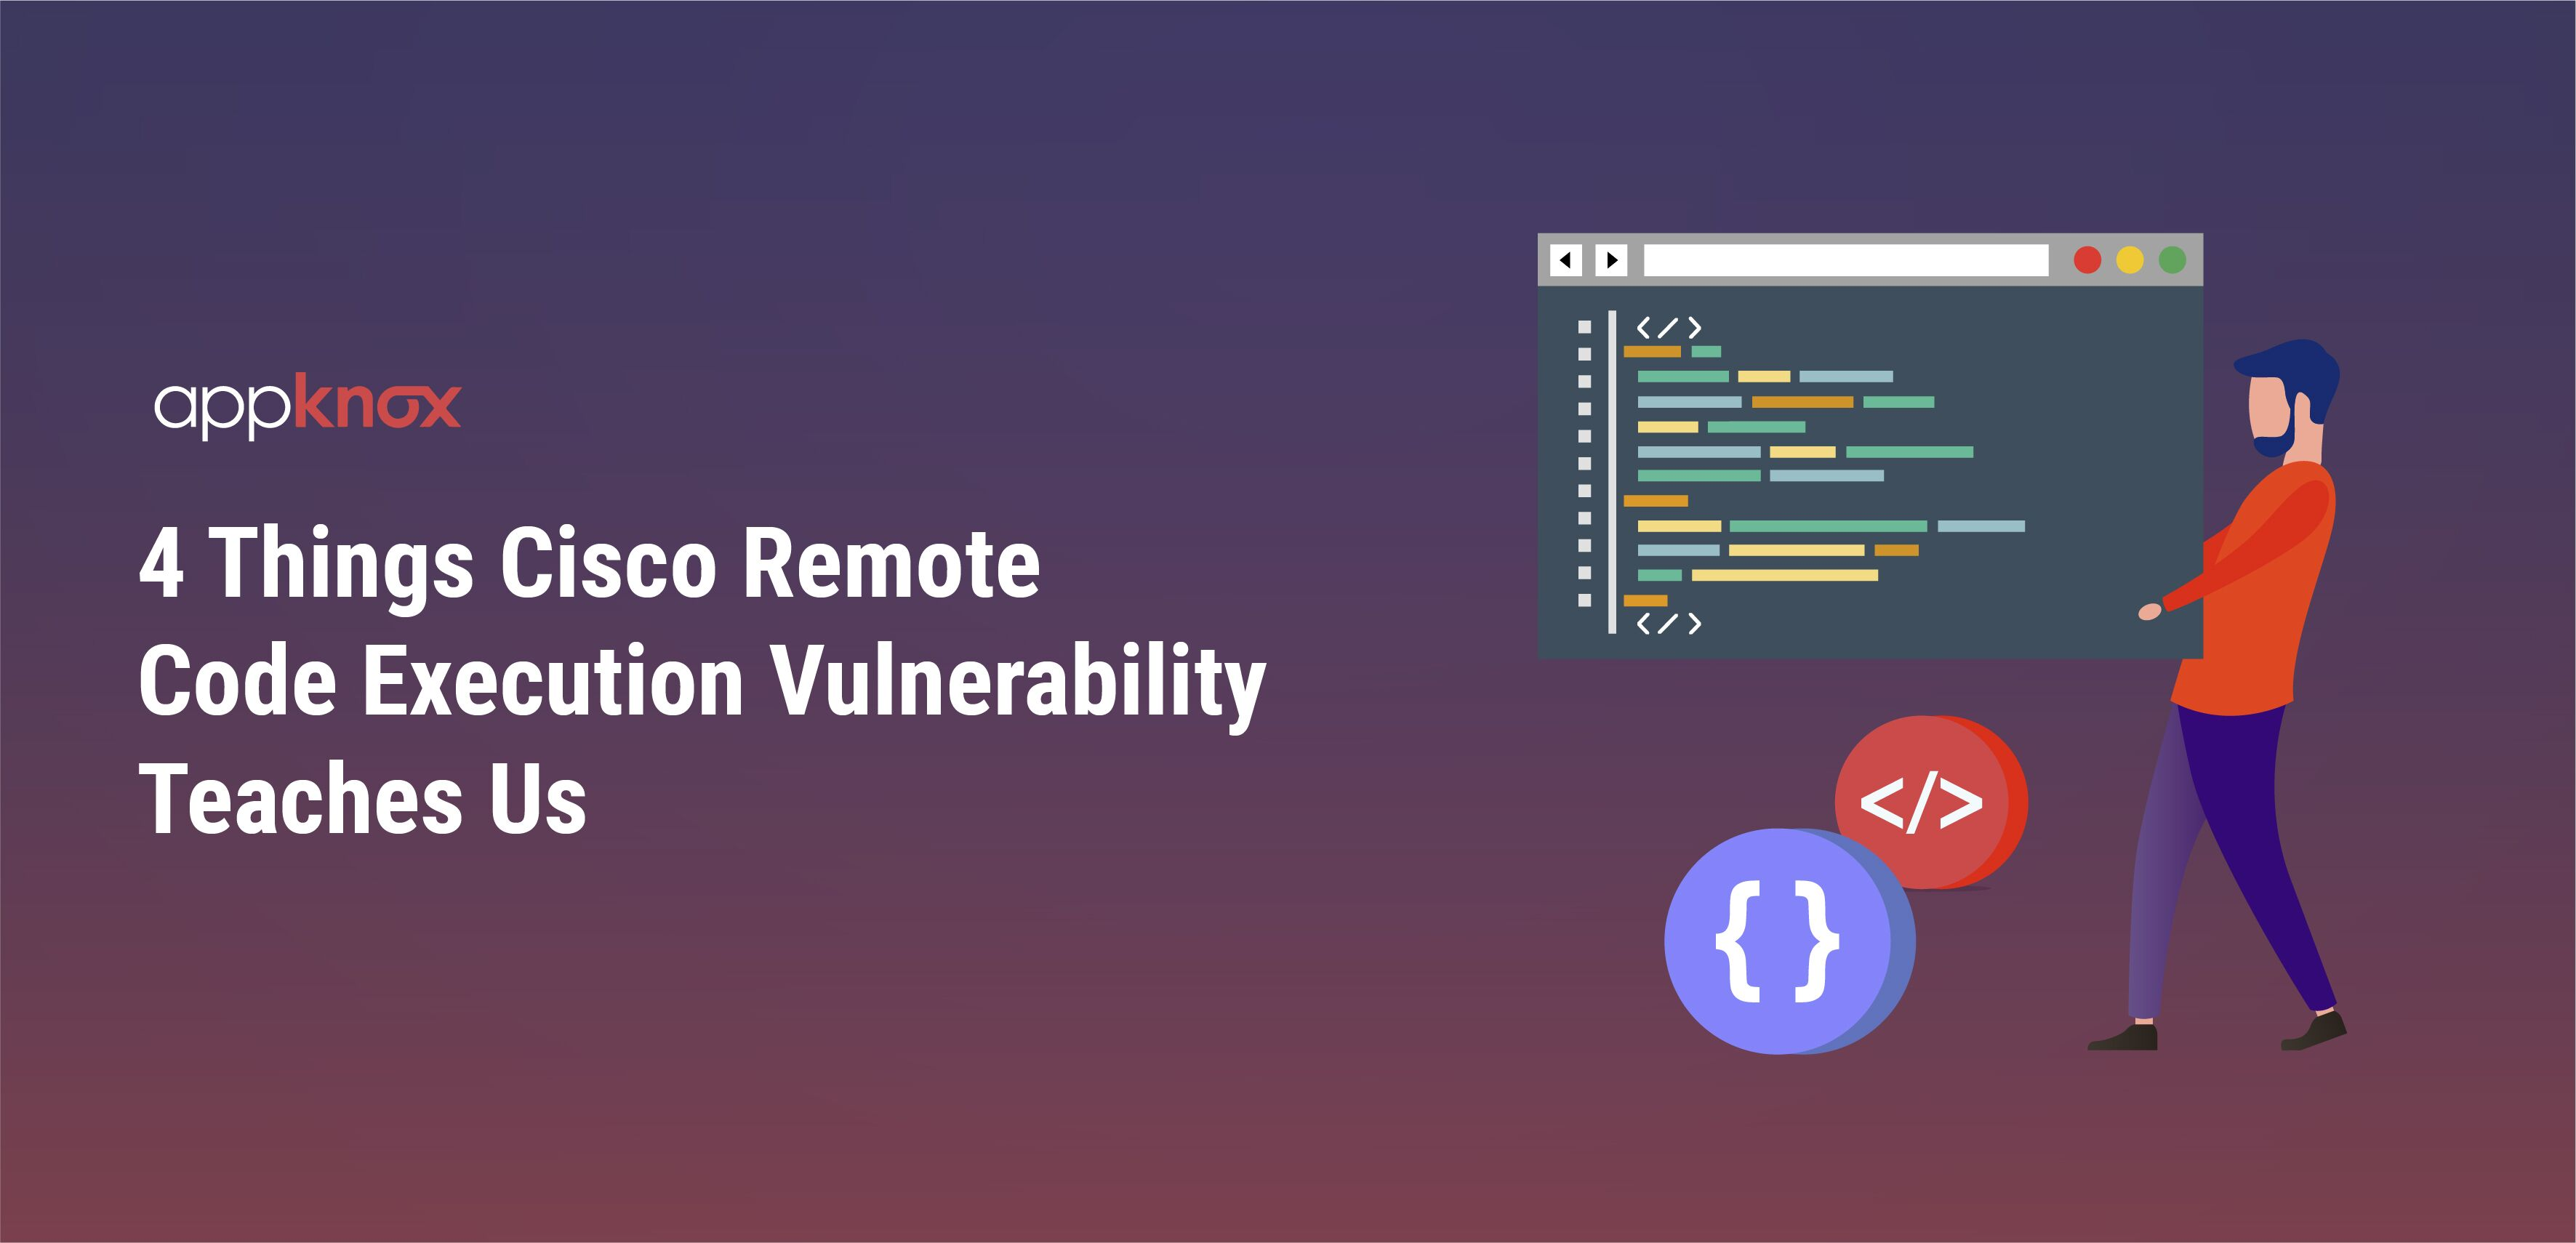 4 Things Cisco Remote Code Execution Vulnerability Teaches Us